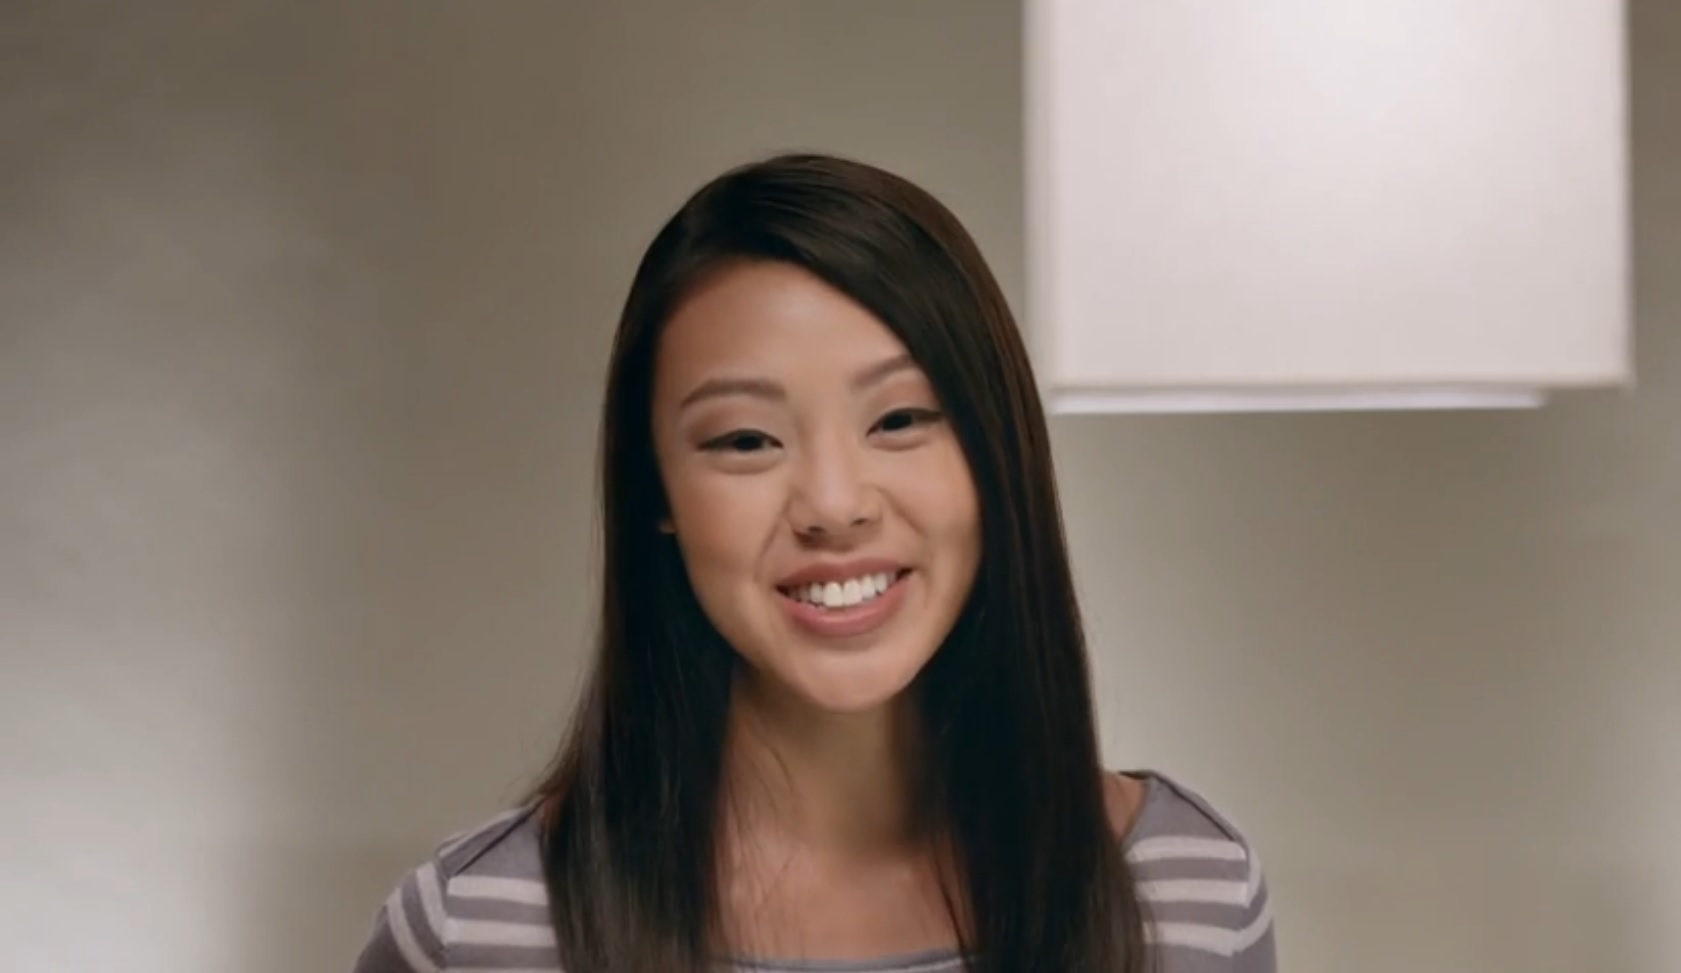 Bang the asian model verizon wireless her